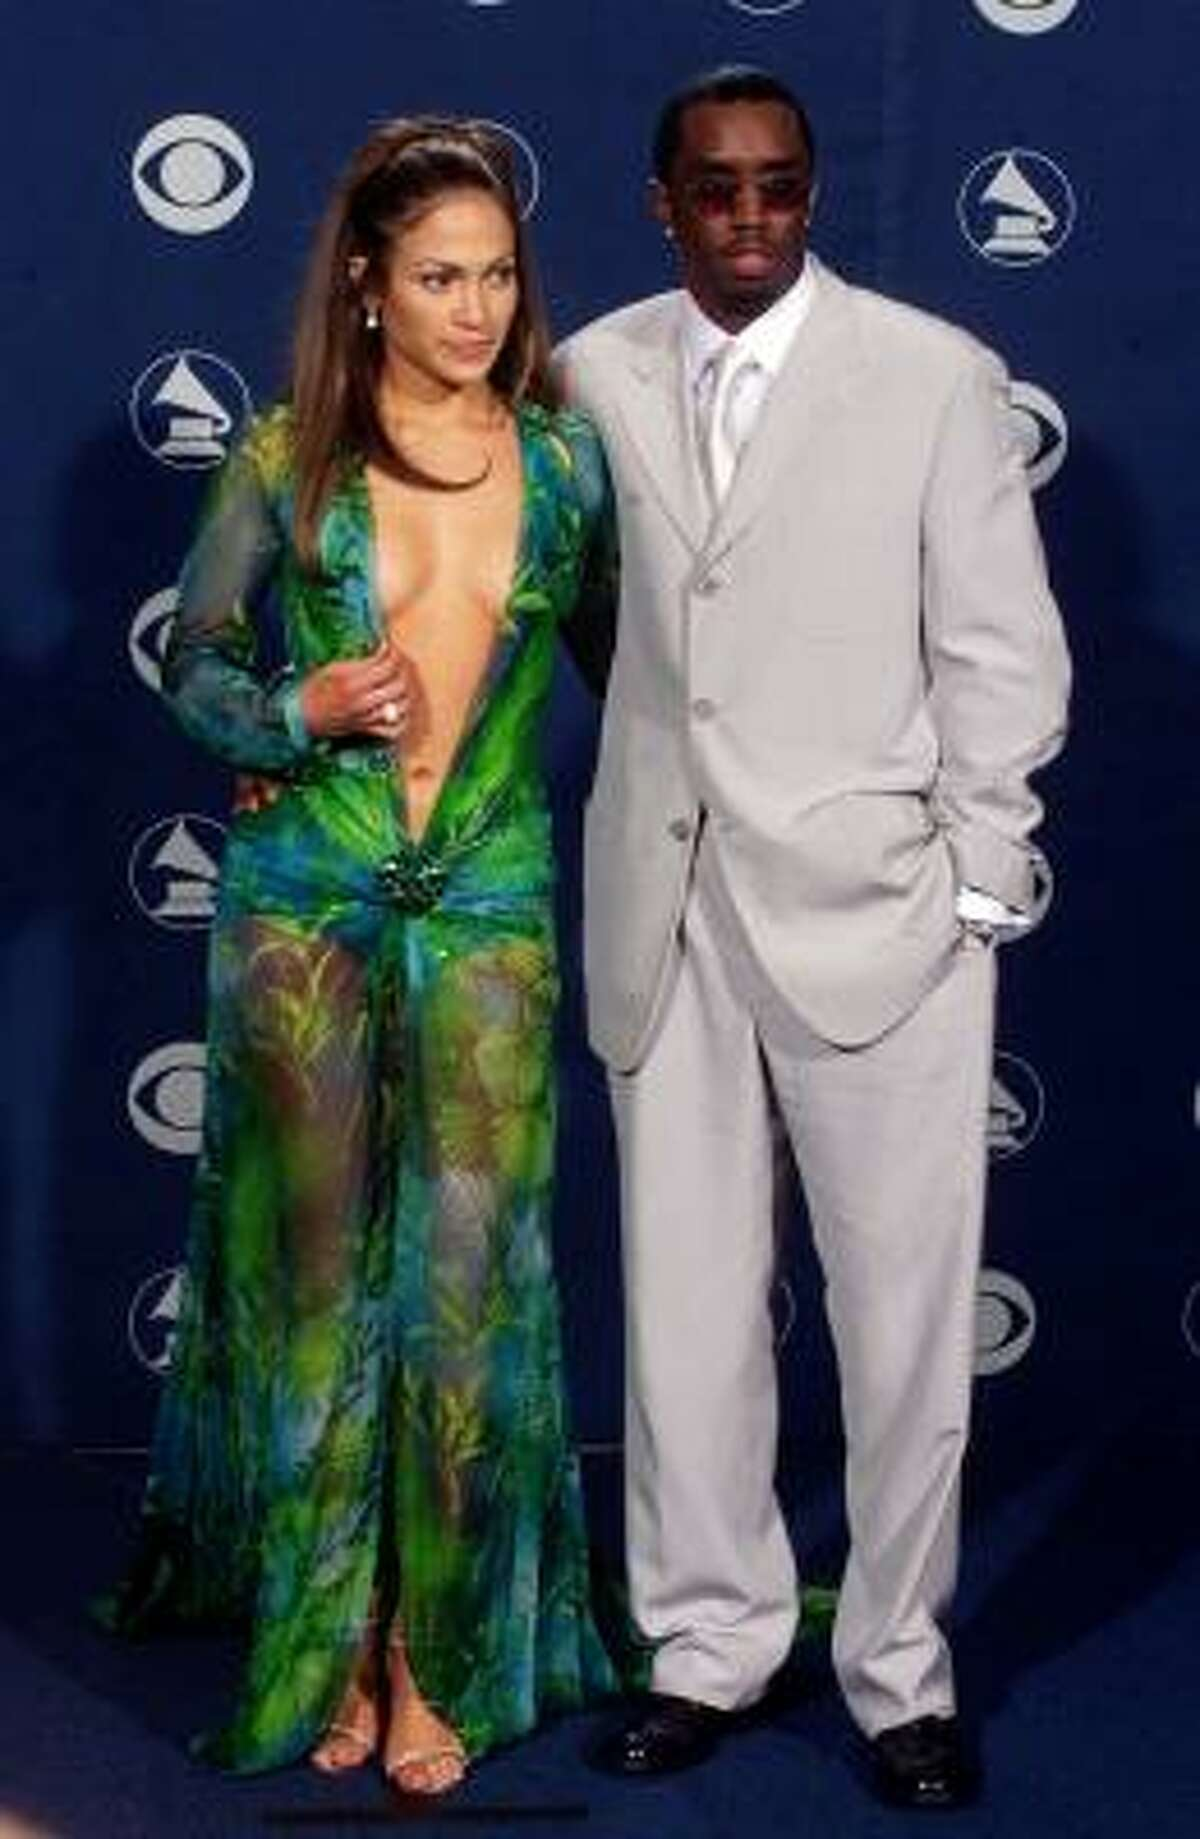 Jennifer Lopez wearing the infamous Versace dress in 2000. Double-sided tape, sold online and in stores, can be a simple solution to strapless dresses and falling hems.